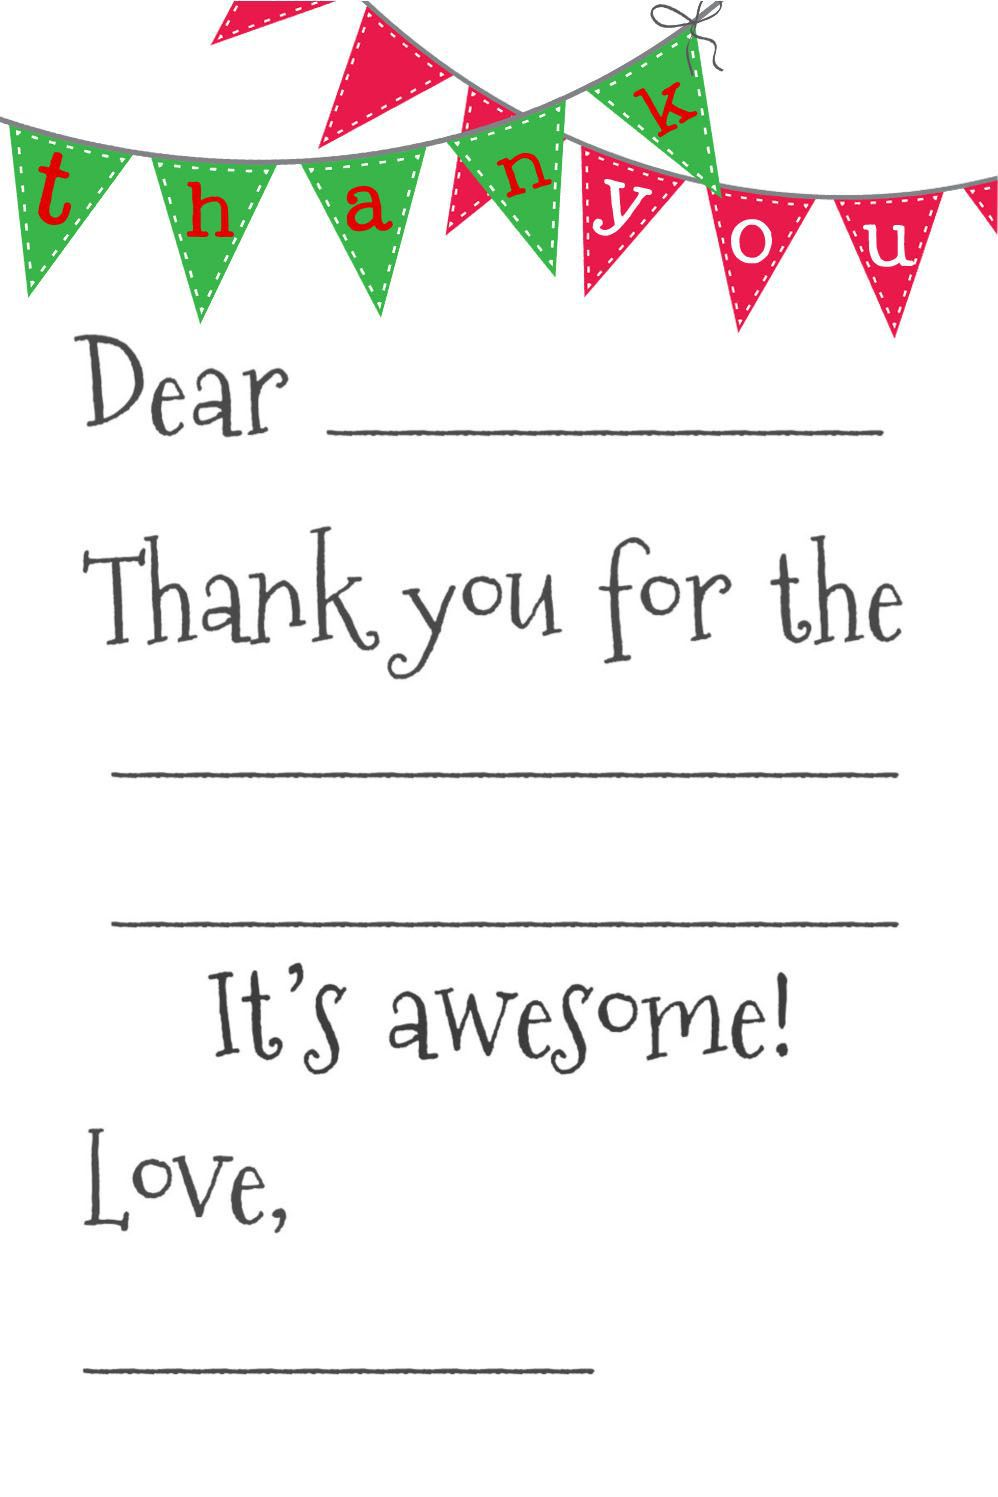 006 Marvelou Thank You Note Card Template Word Concept Full